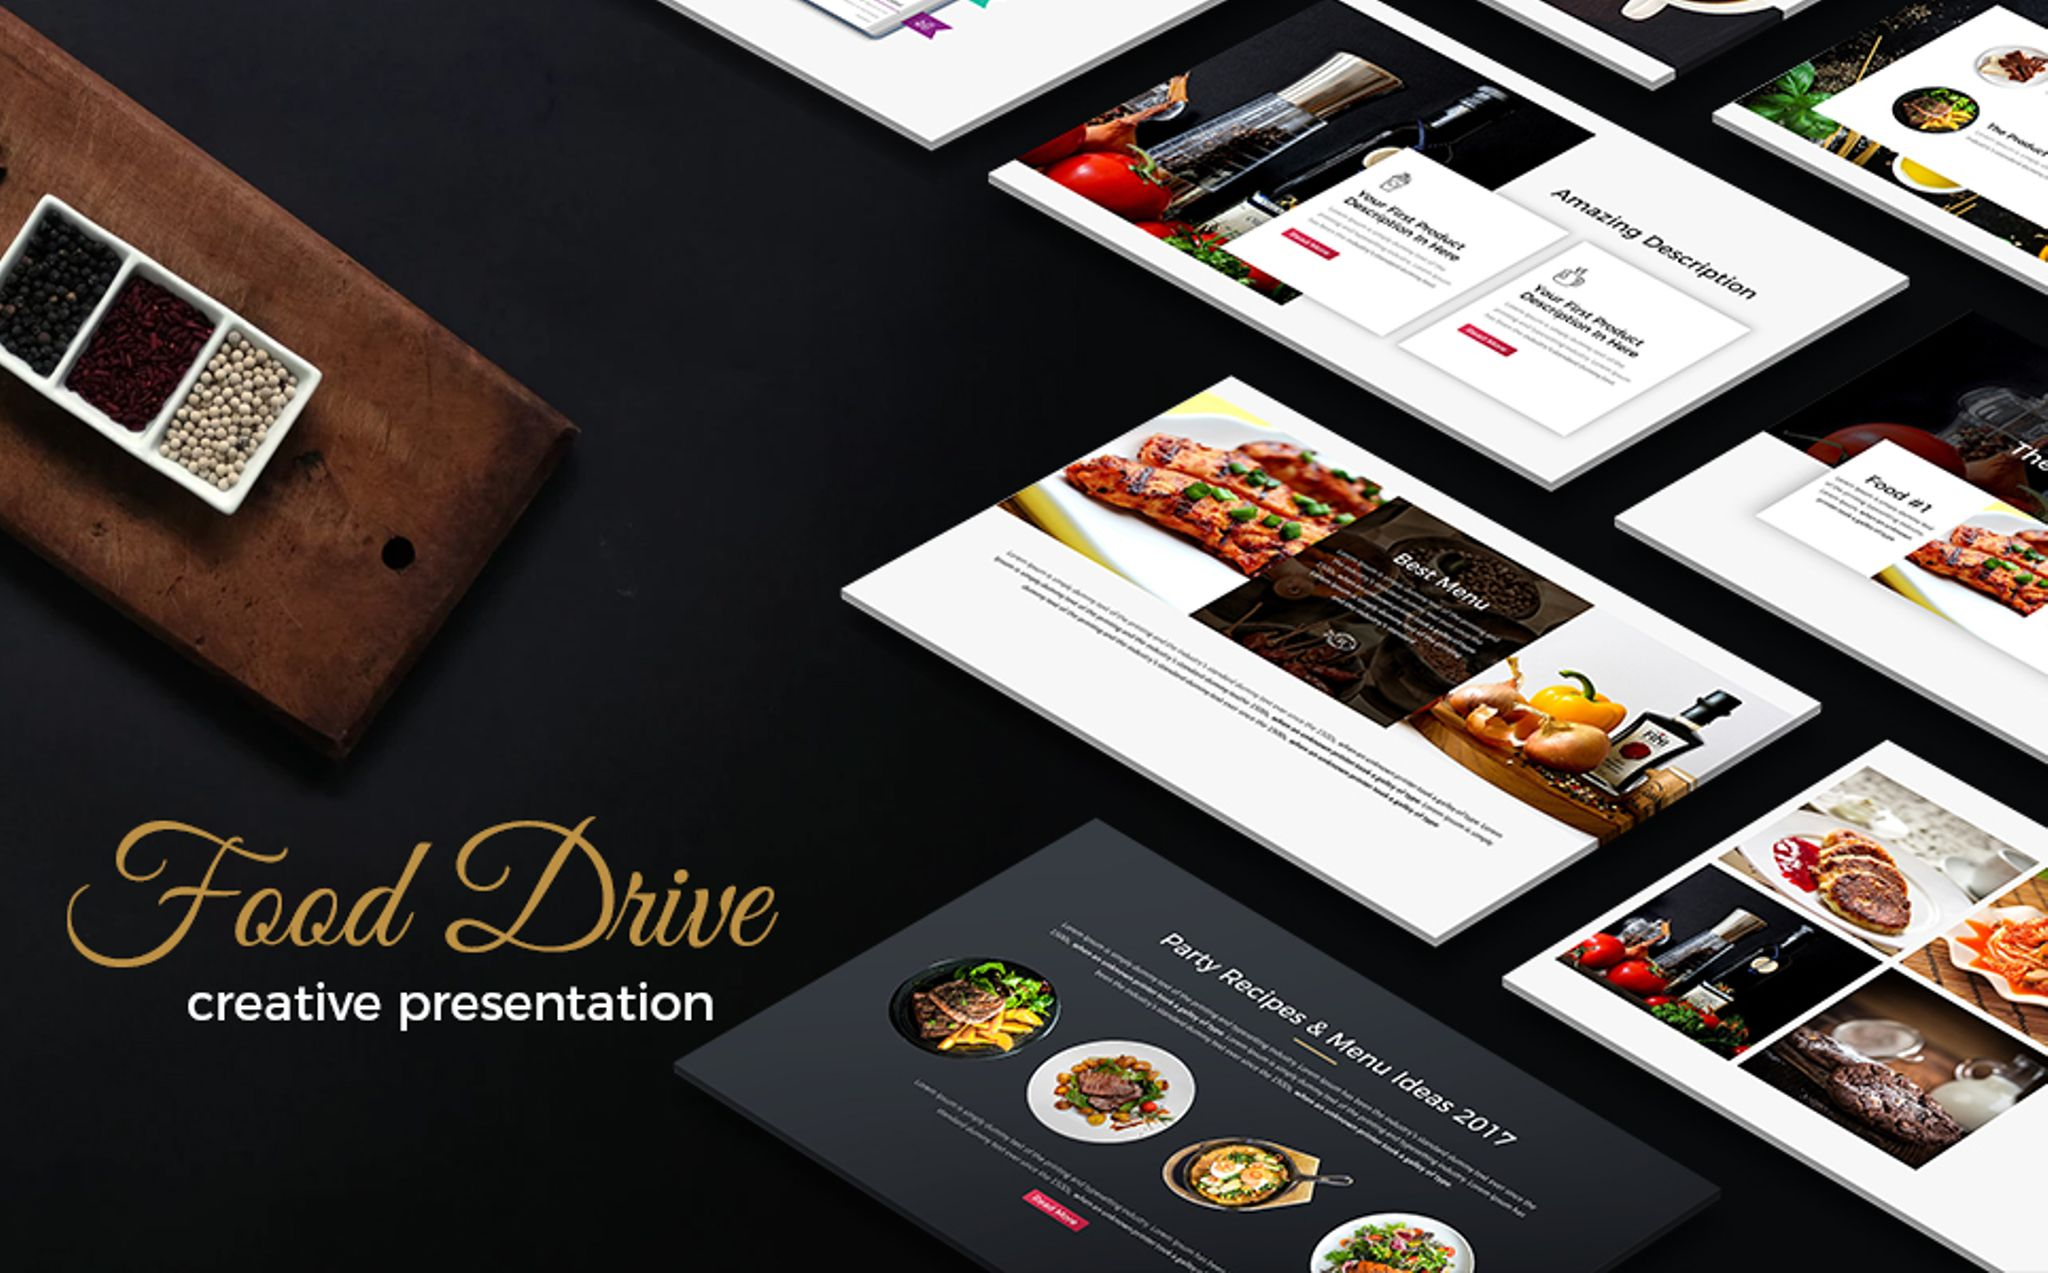 food drive presentation powerpoint template 65761